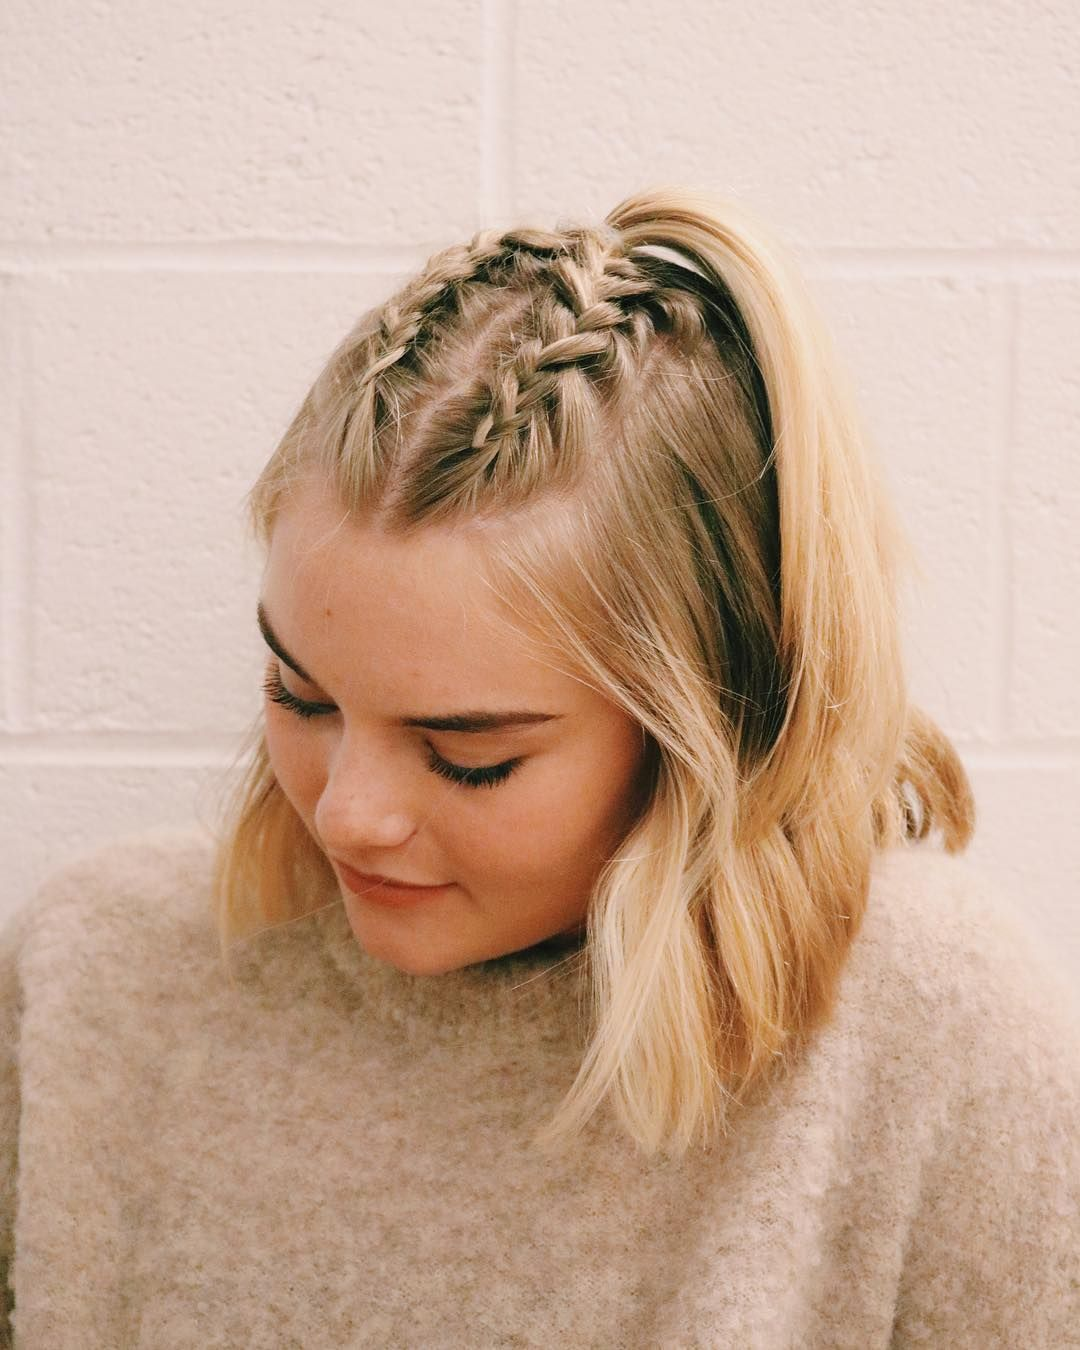 These Gym Hairstyles Will Last You Through Literally Any Workout French Braid Short Hair Braids For Short Hair Braided Bangs Hairstyles